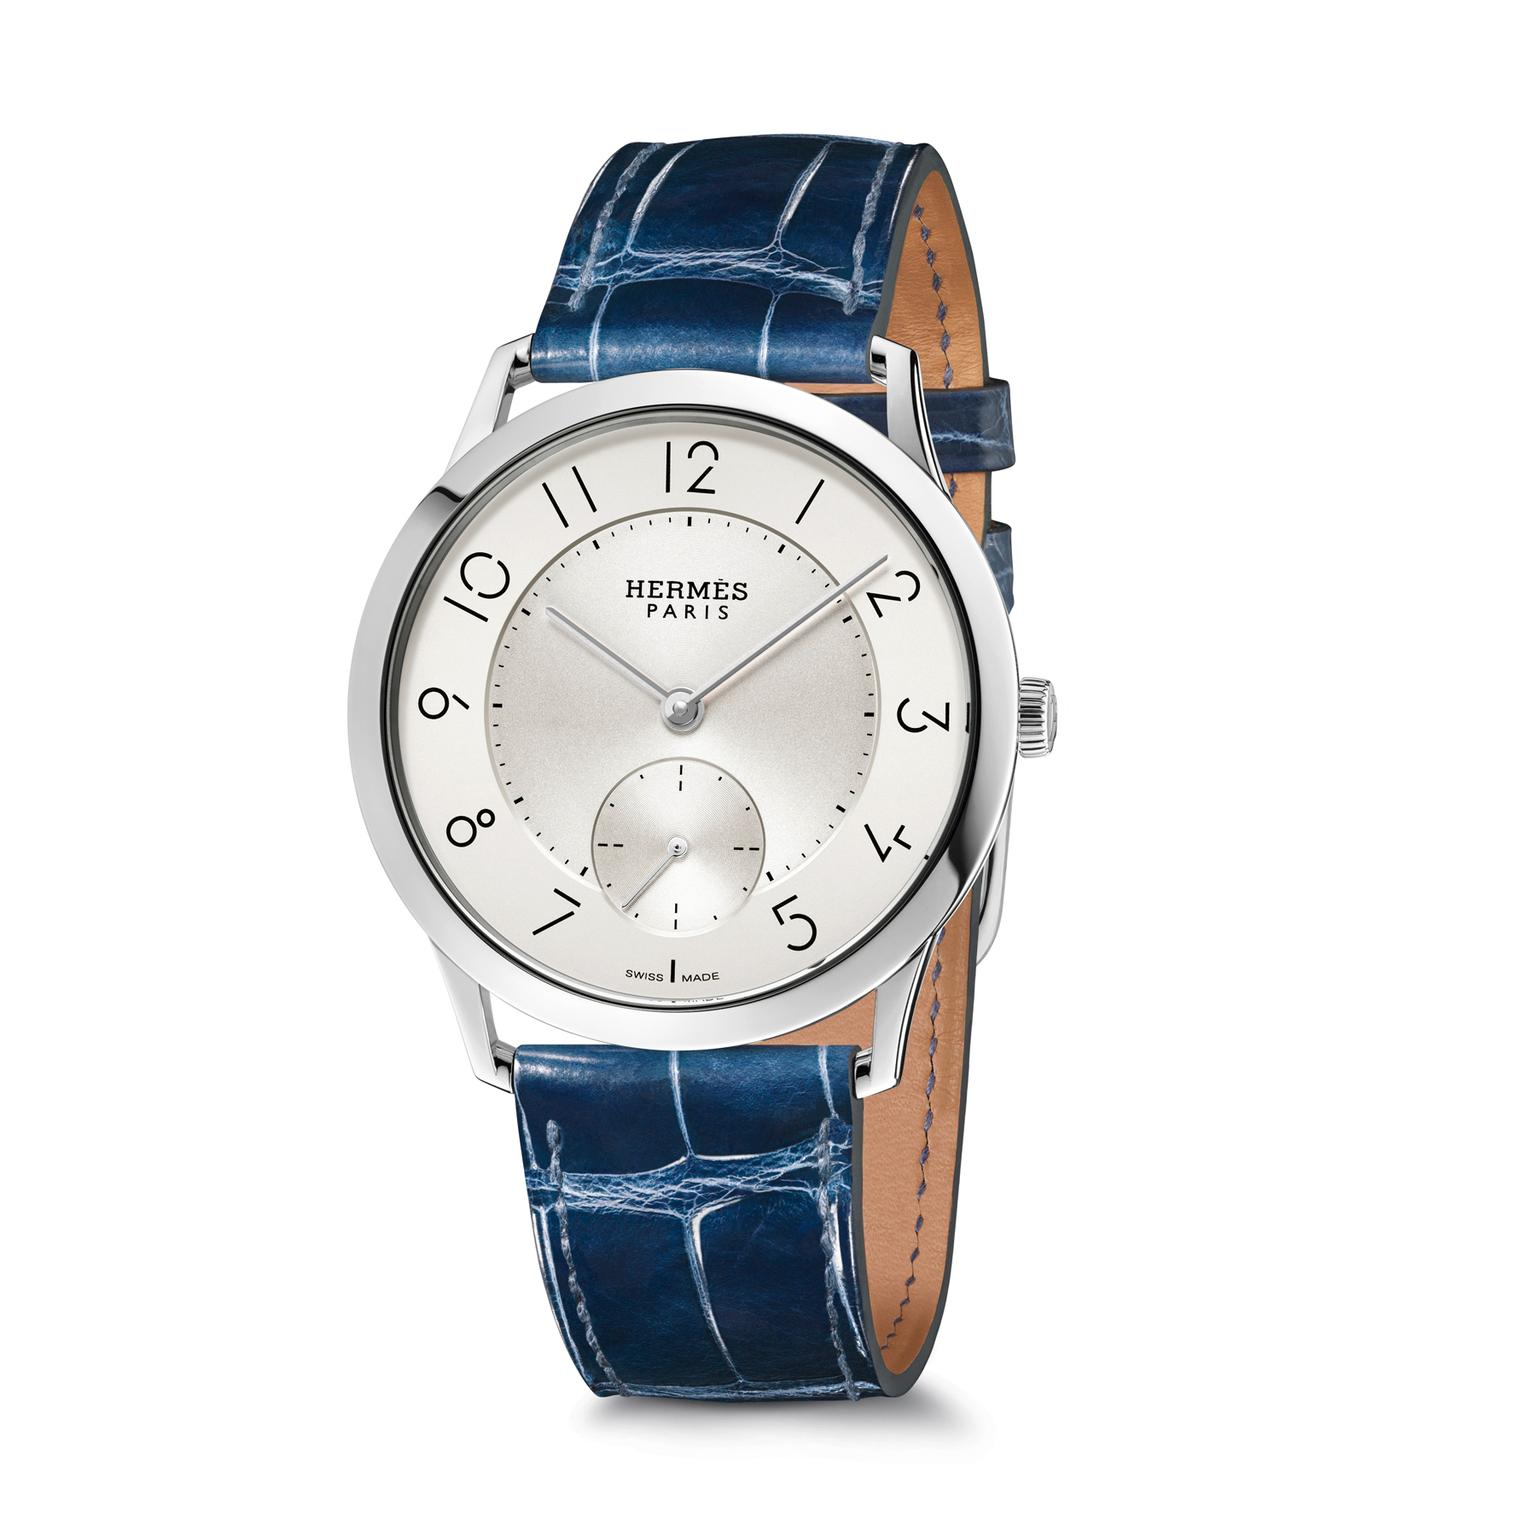 Slim d'Hermes 39.5mm watch